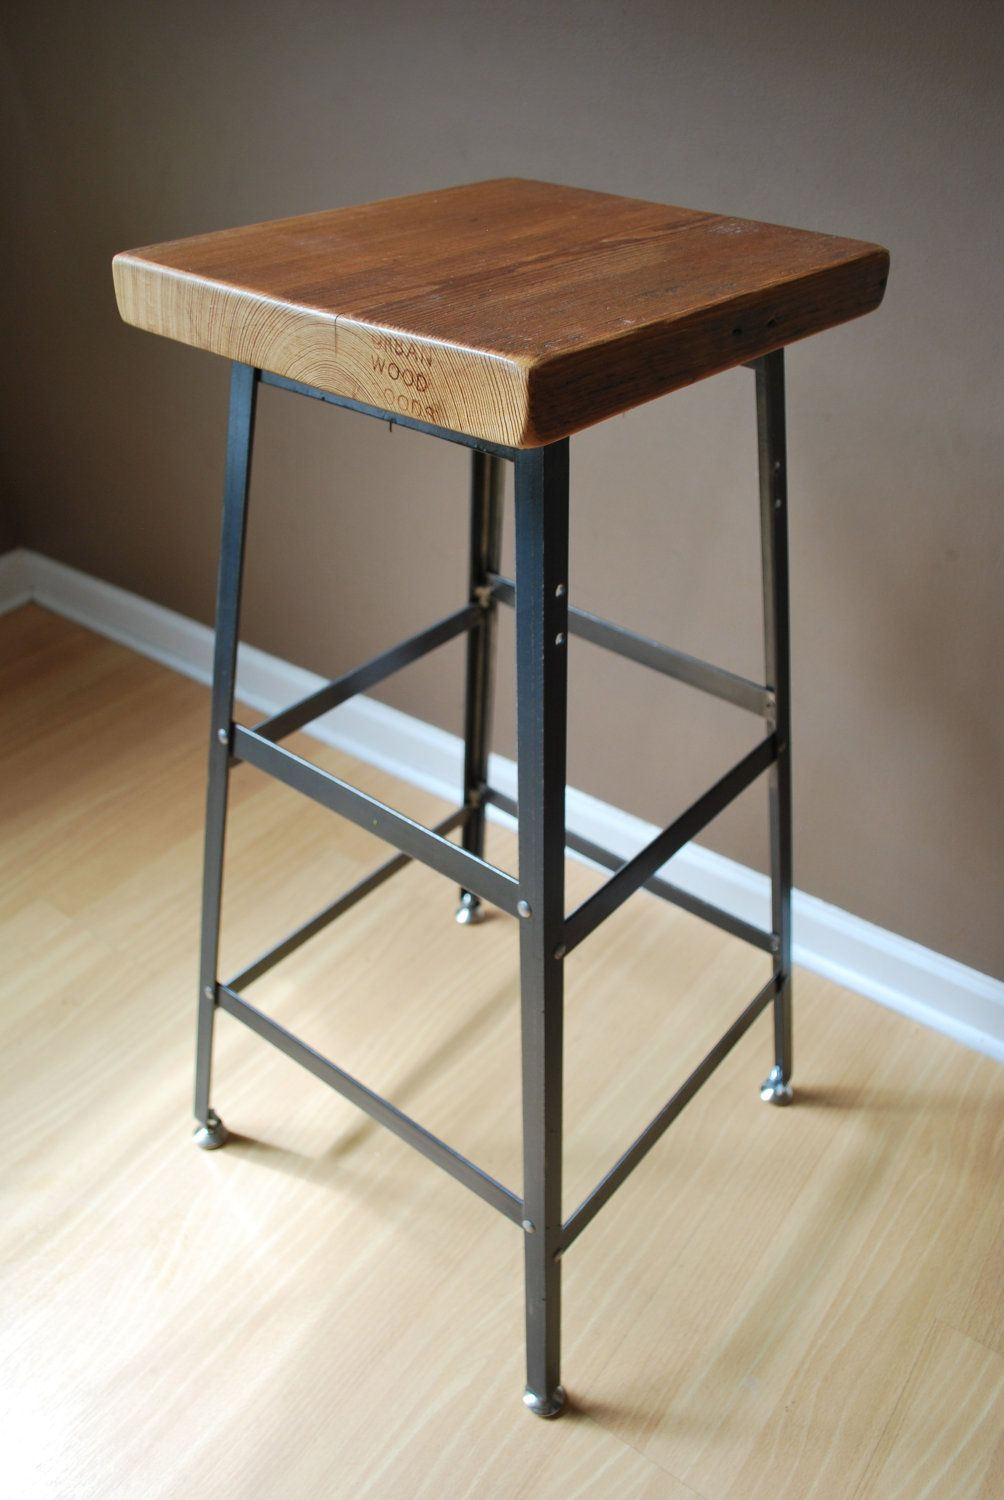 Reclaimed Wood And Steel Industrial Shop Stool Made In